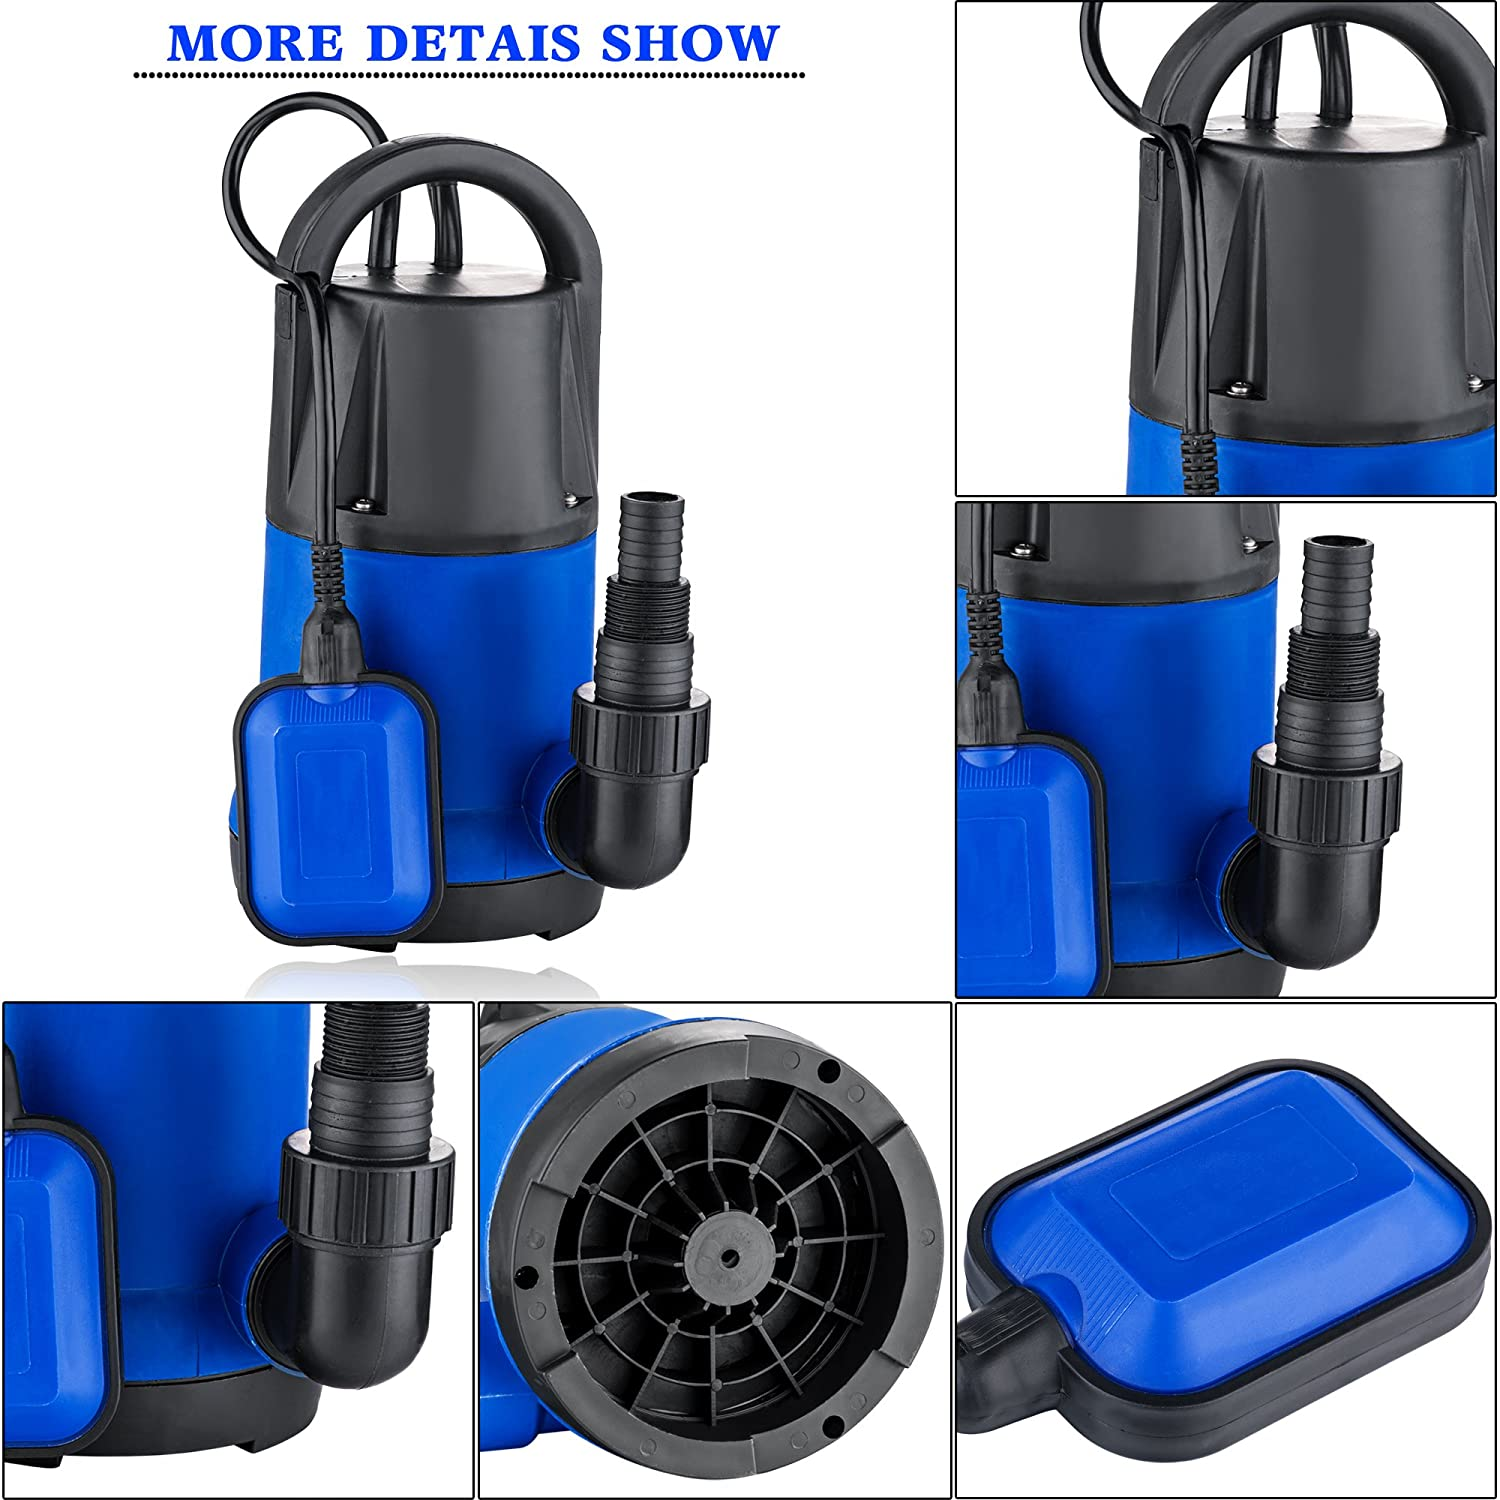 1//2 HP Submersible Sump Pump 400W Dirty Clean Water Pump 2115GPH w// 15ft Cable and Float Switch